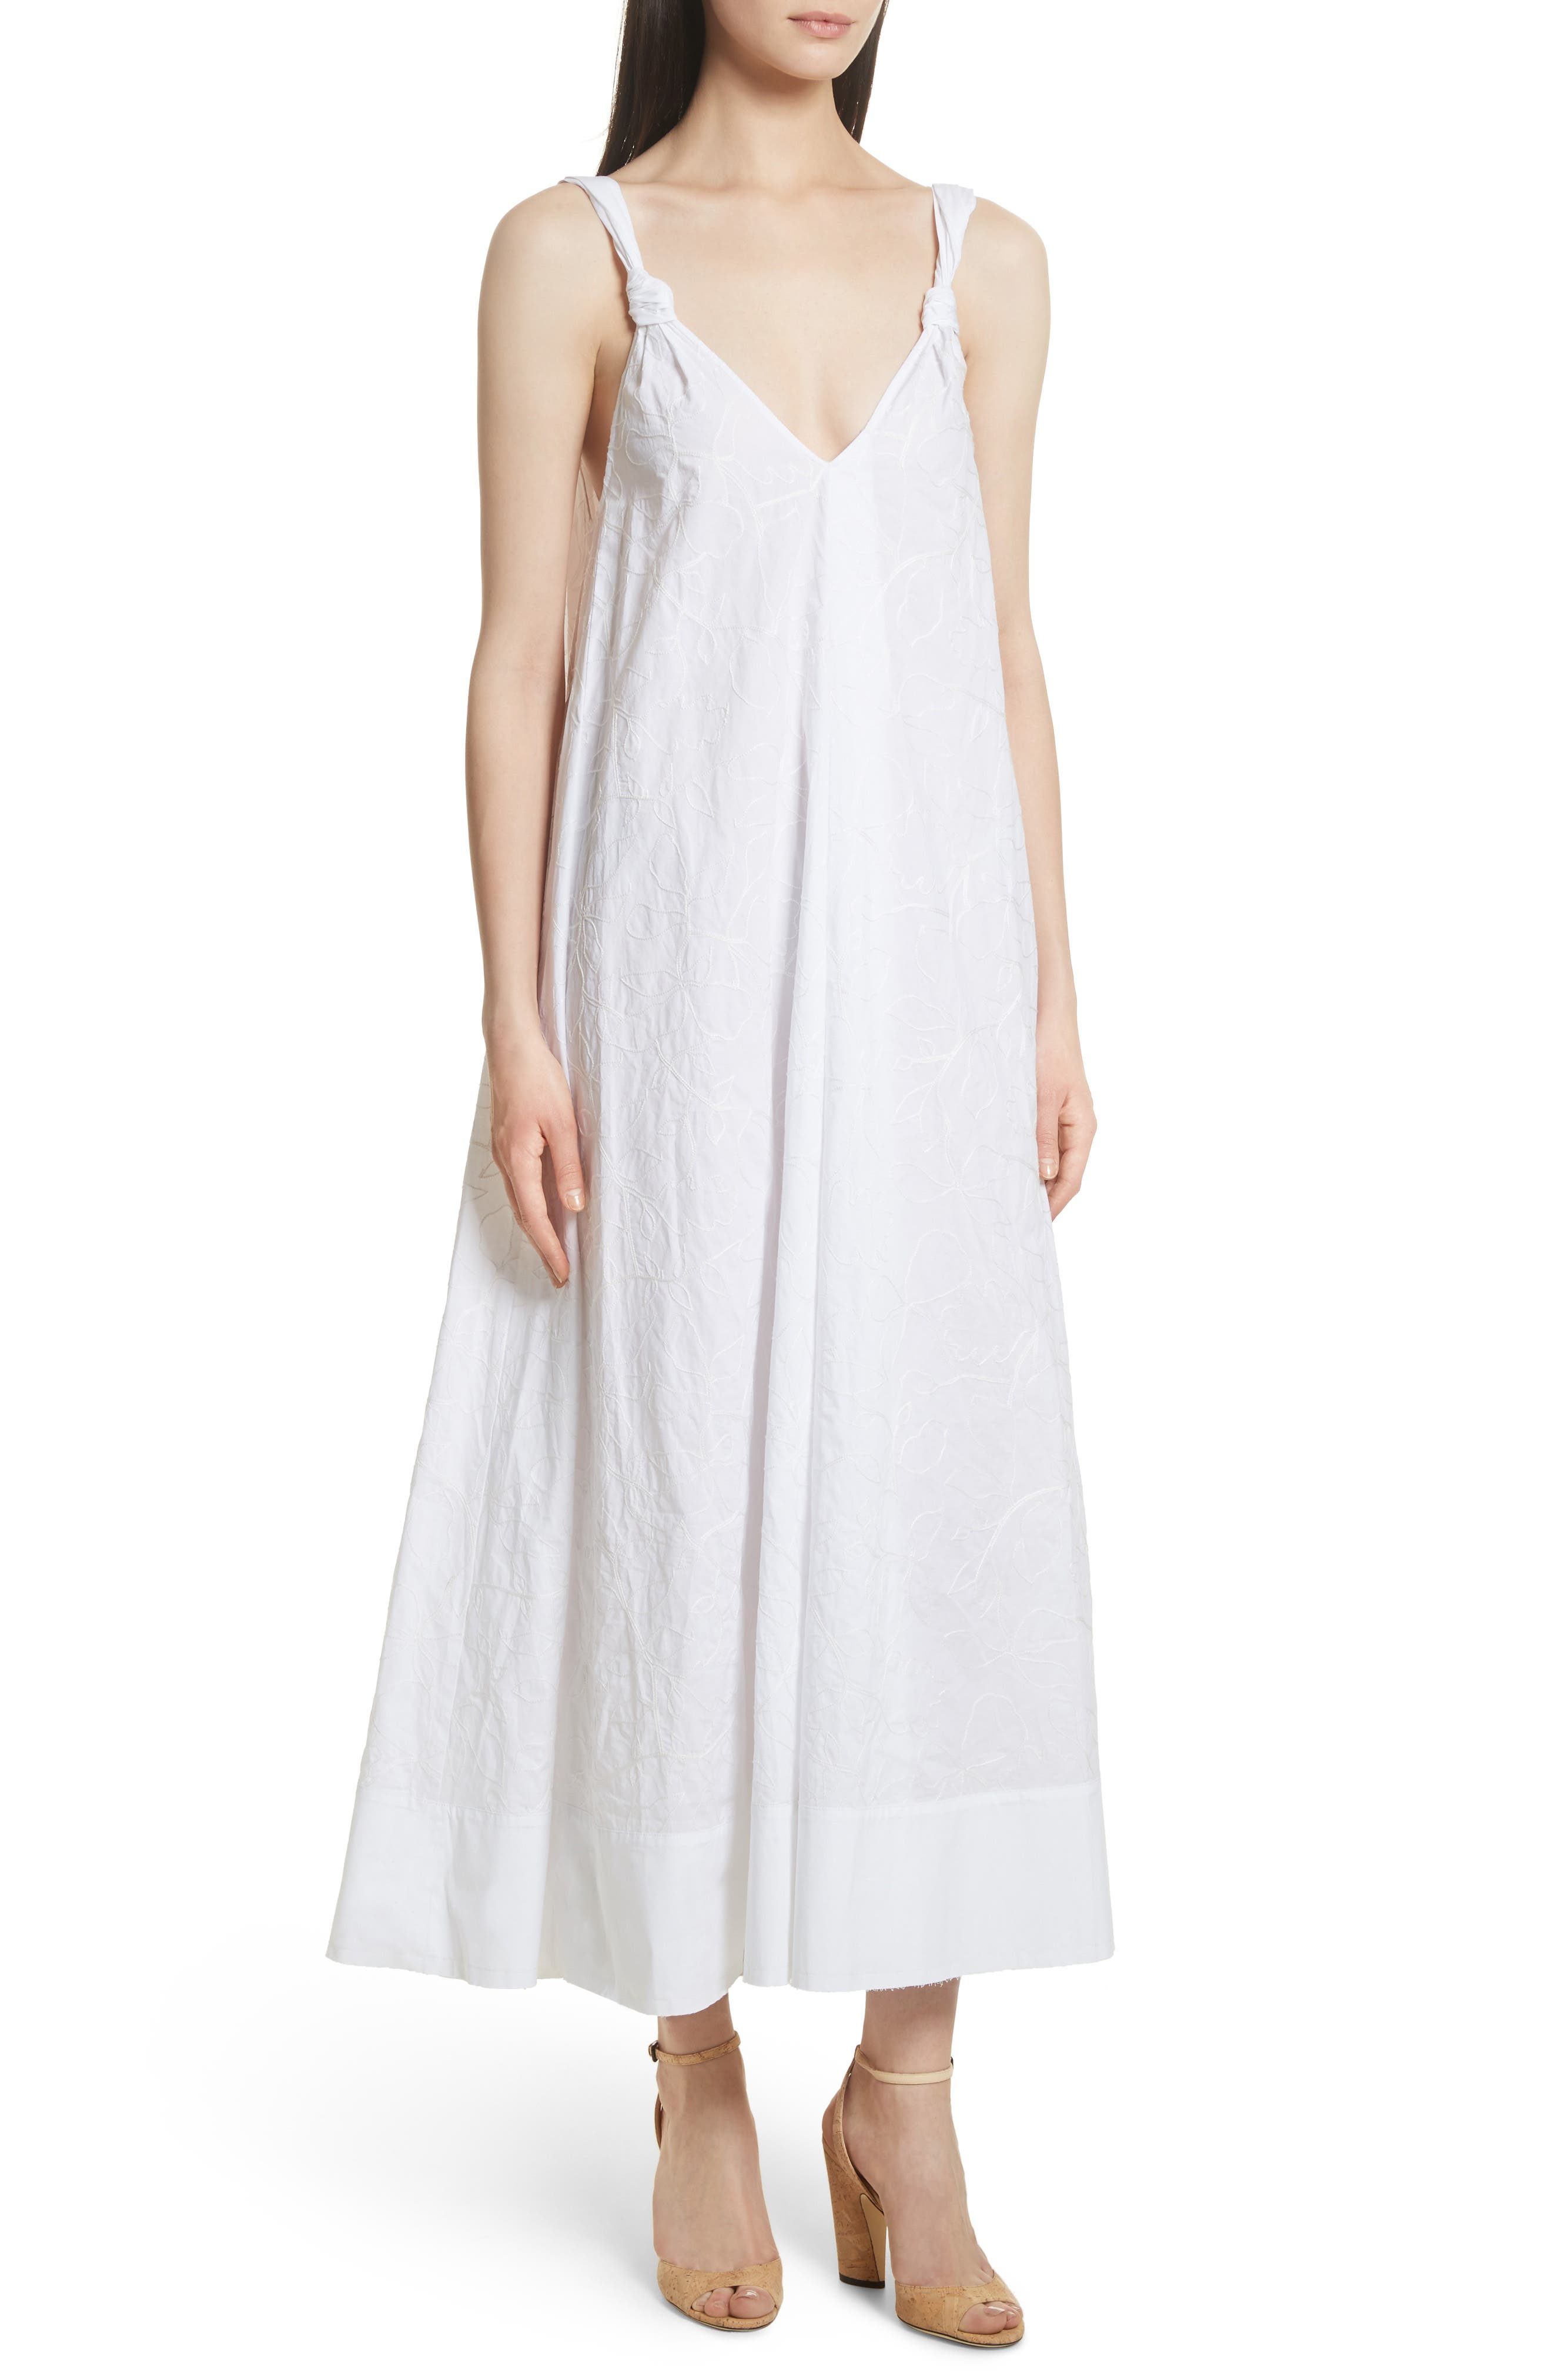 ELIZABETH AND JAMES,                             Denali Embroidered Maxi Dress,                             Main thumbnail 1, color,                             100